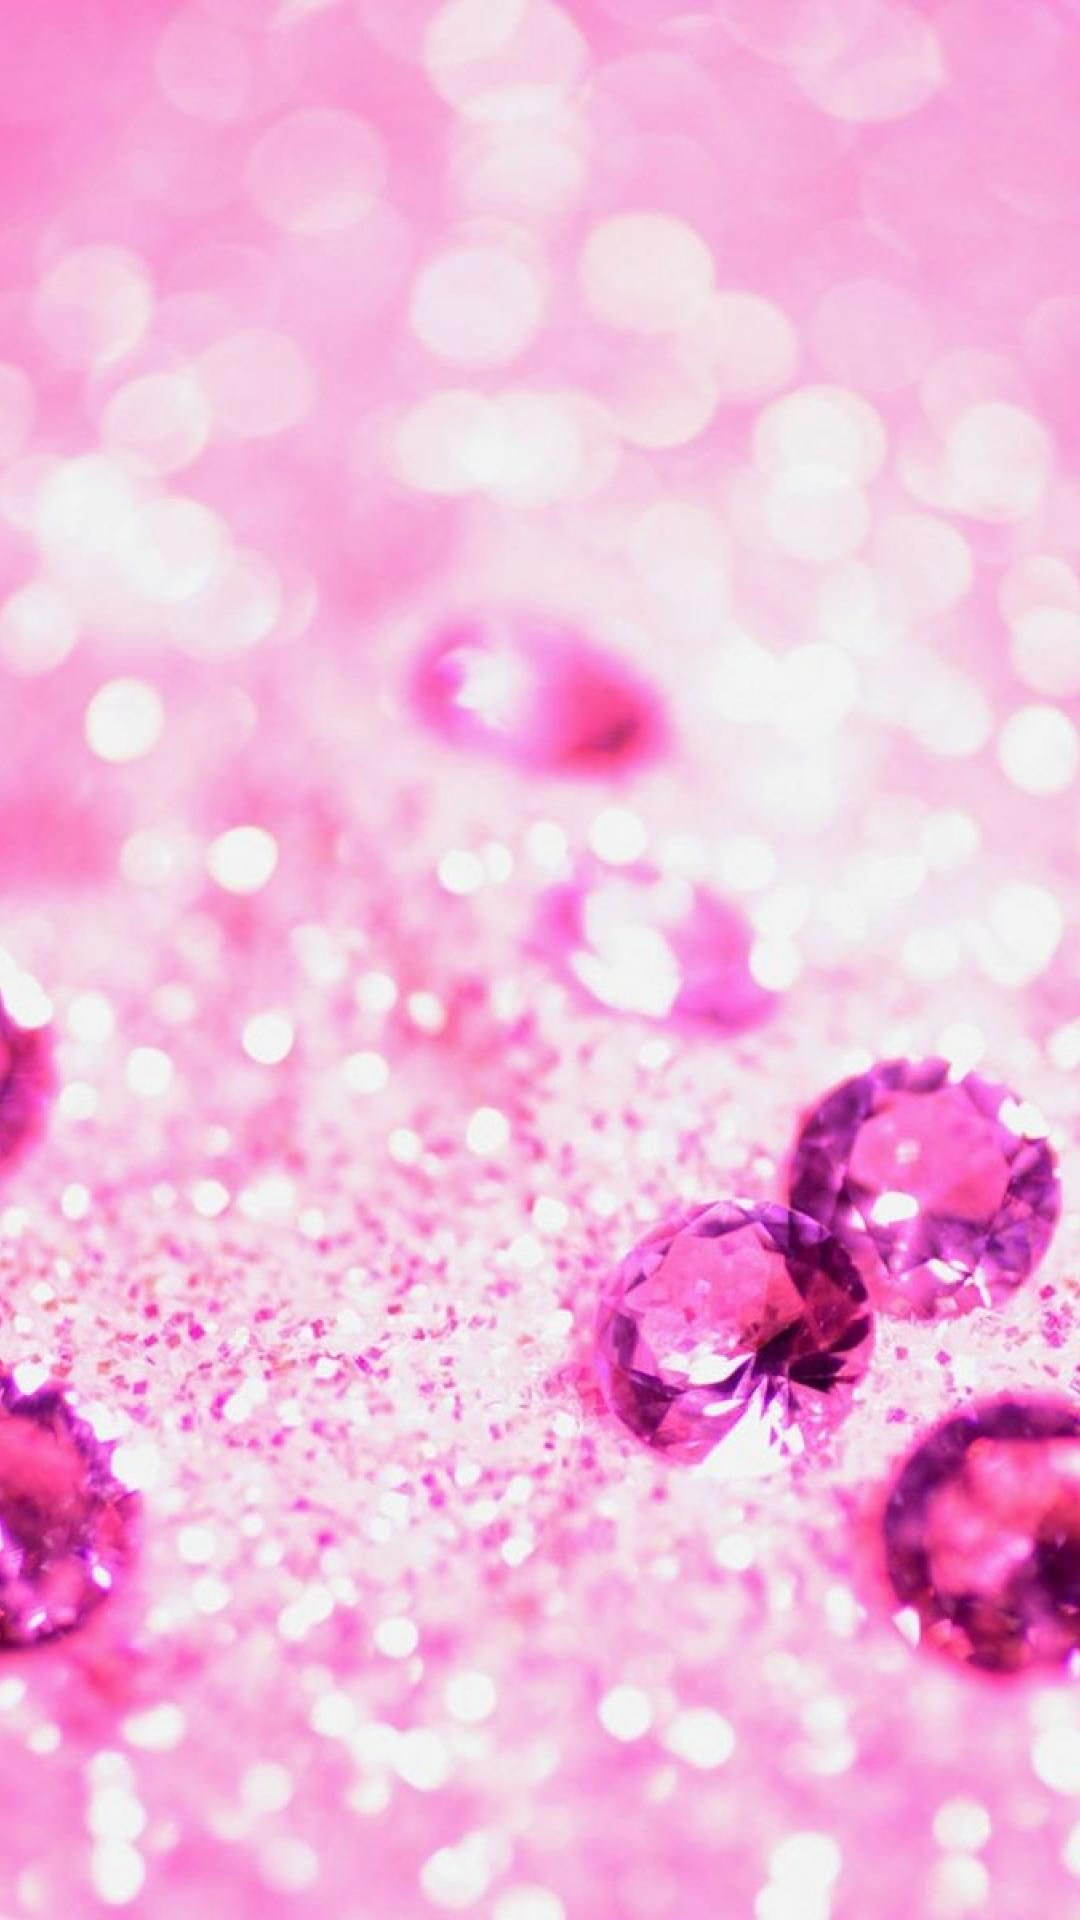 Girly phone wallpapers wallpaper girly in wallpapers for Baby pink glitter wallpaper